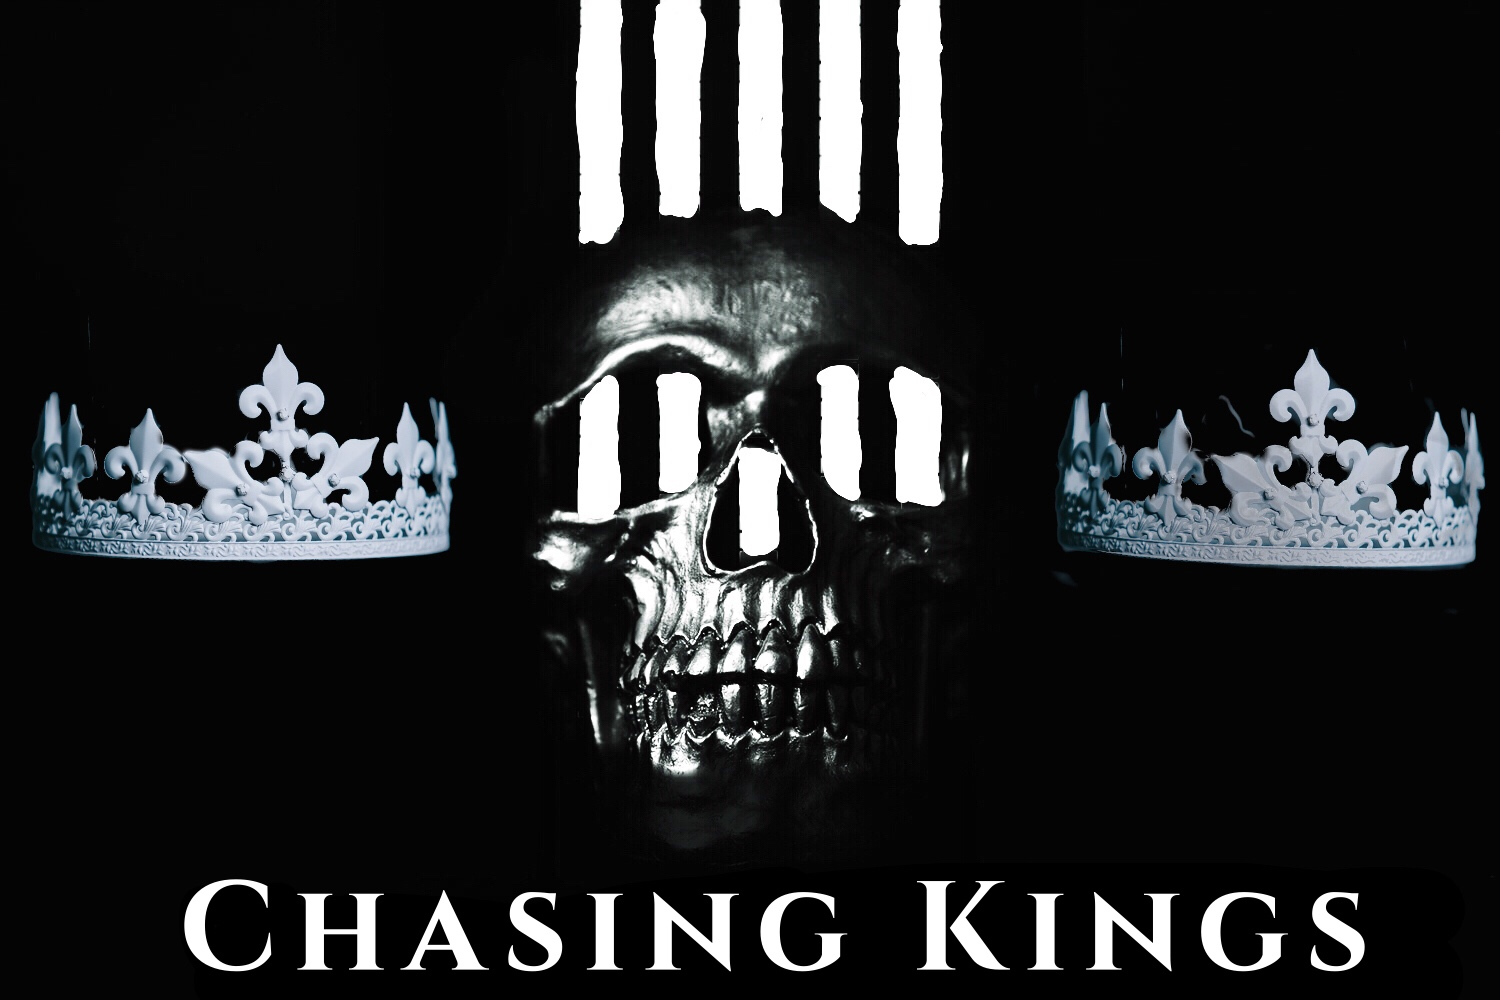 Chasing Kings - Life inside a prison's walls take a turn for the Shakespearean when a retired drama teacher arrives to introduce the inmates to HAMLET.